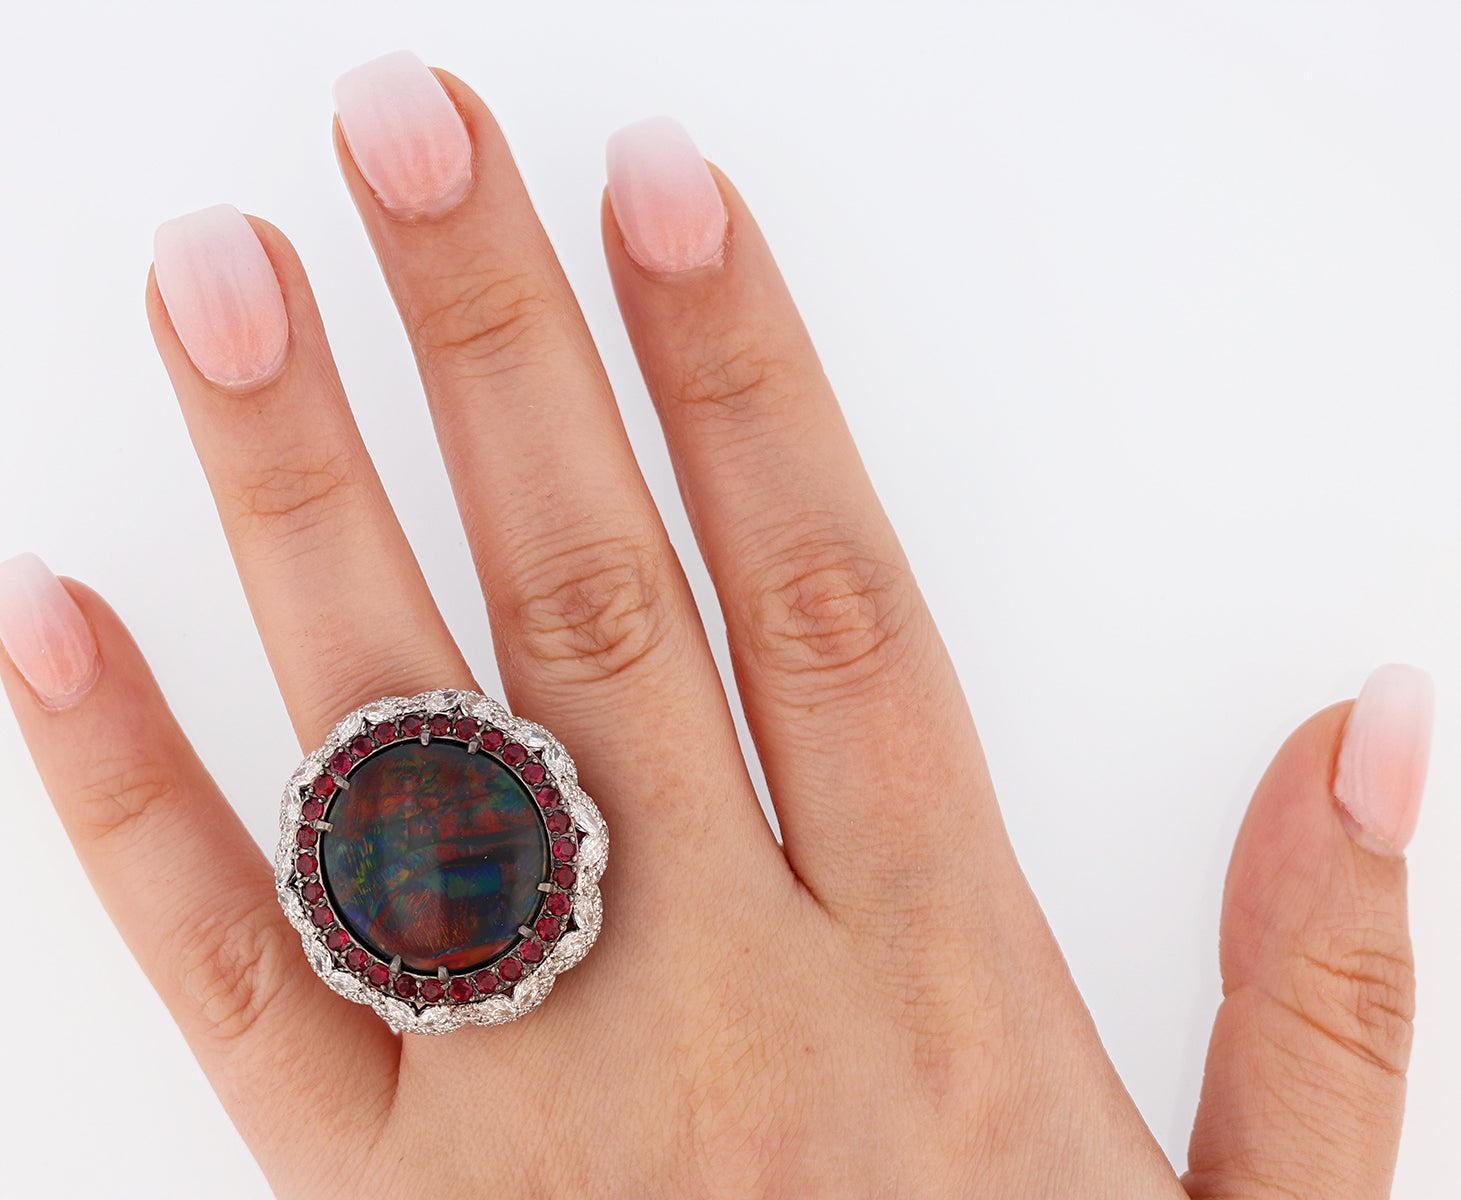 14K White Gold 11.11 Carat Australian Black Opal, Diamond, and Ruby Ring - Nazarelle